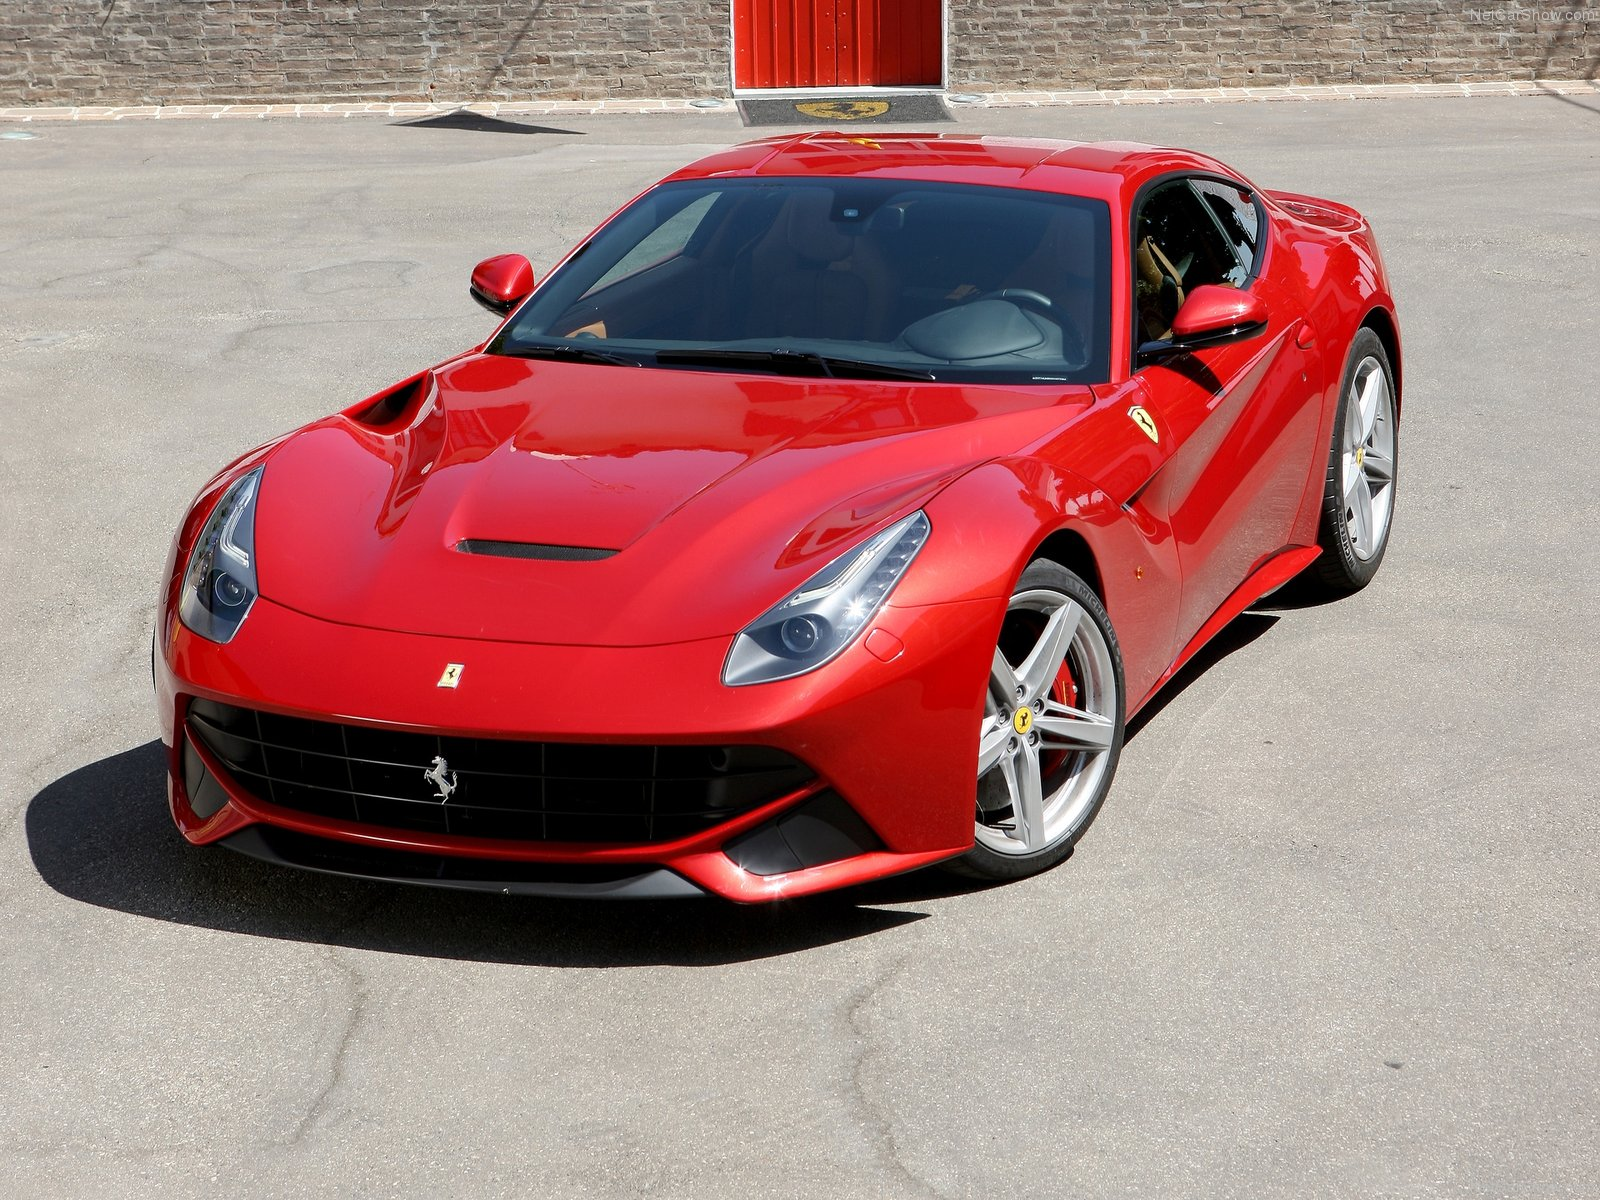 Ferrari F12 Berlinetta Coupé